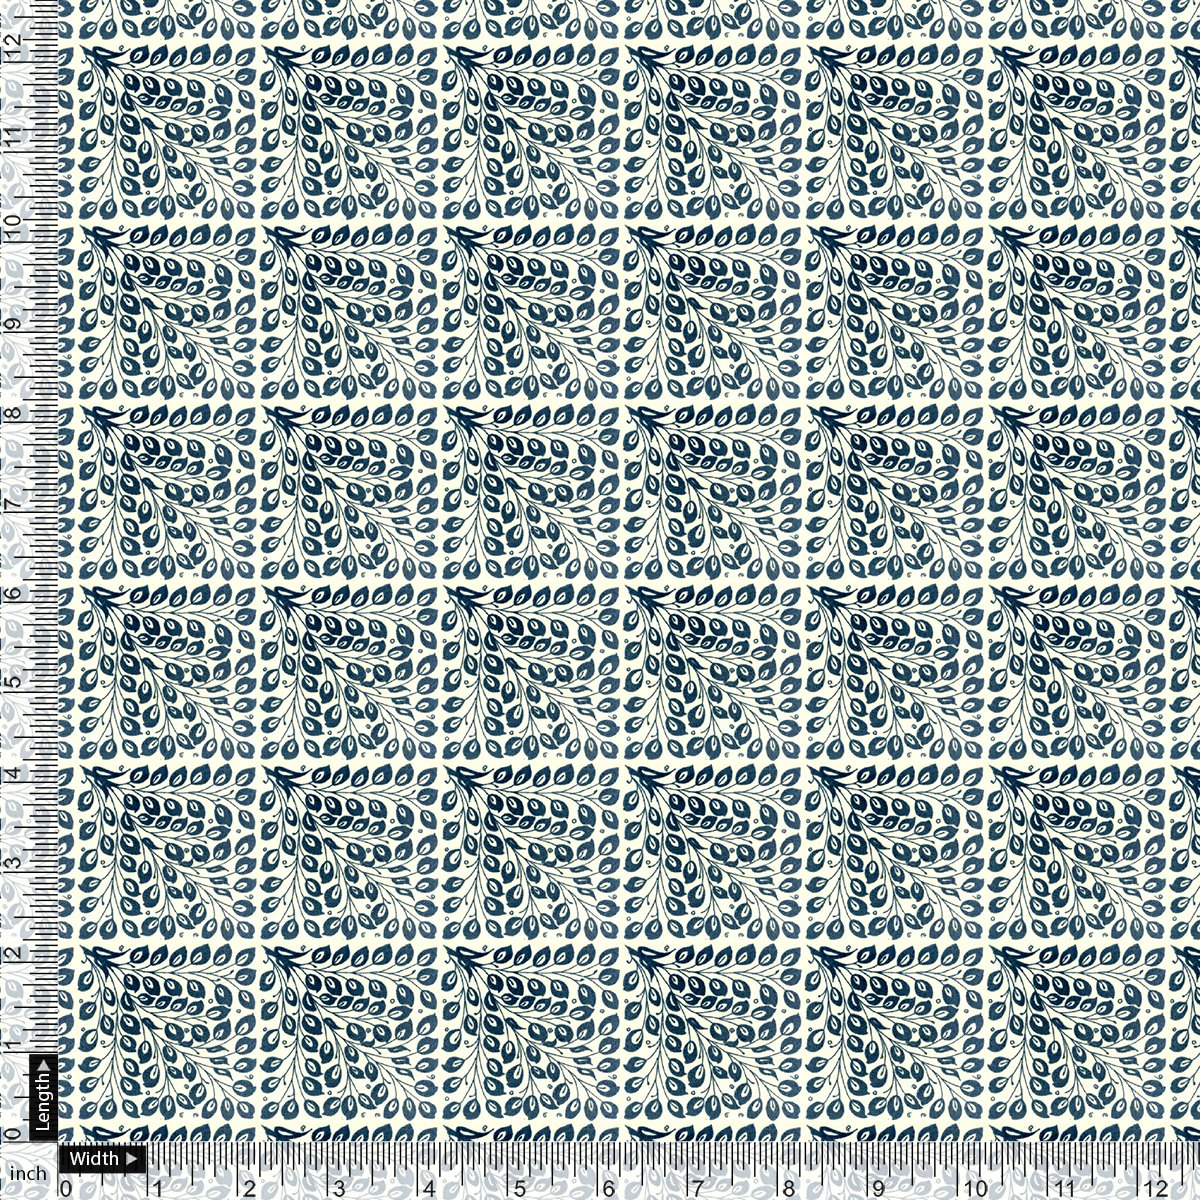 Morpich Block Digital Printed Fabric  - Upada Silk